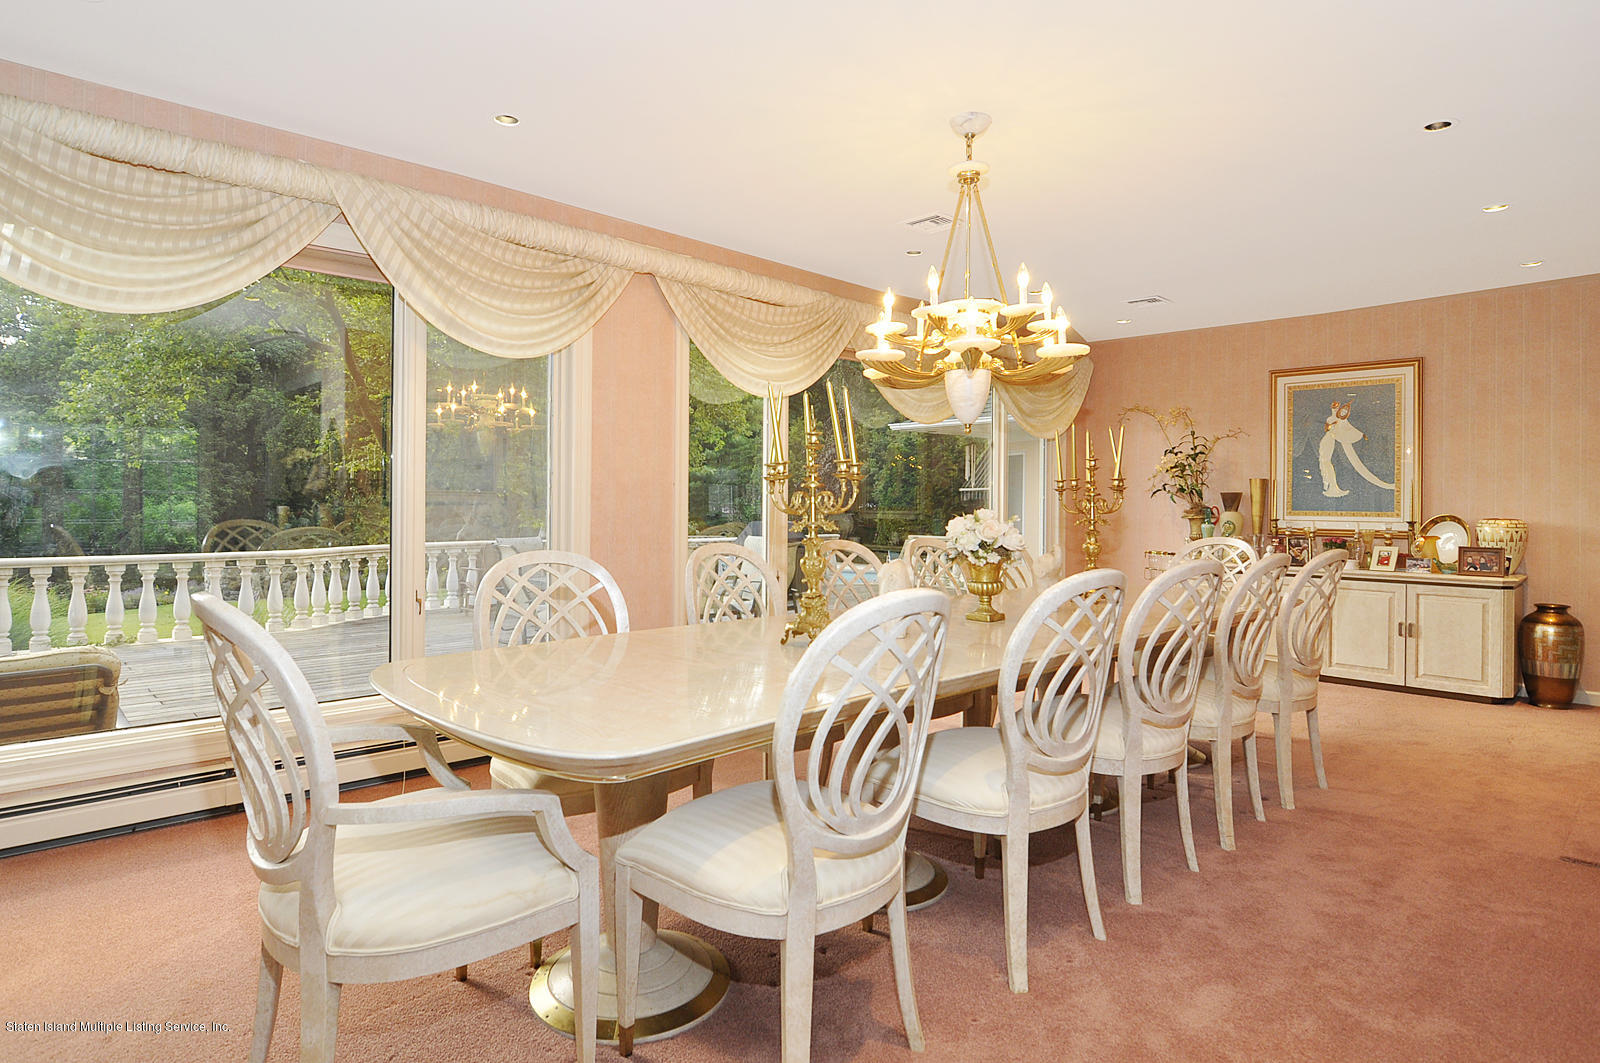 Single Family - Detached 738 Todt Hill Road  Staten Island, NY 10301, MLS-1127956-6